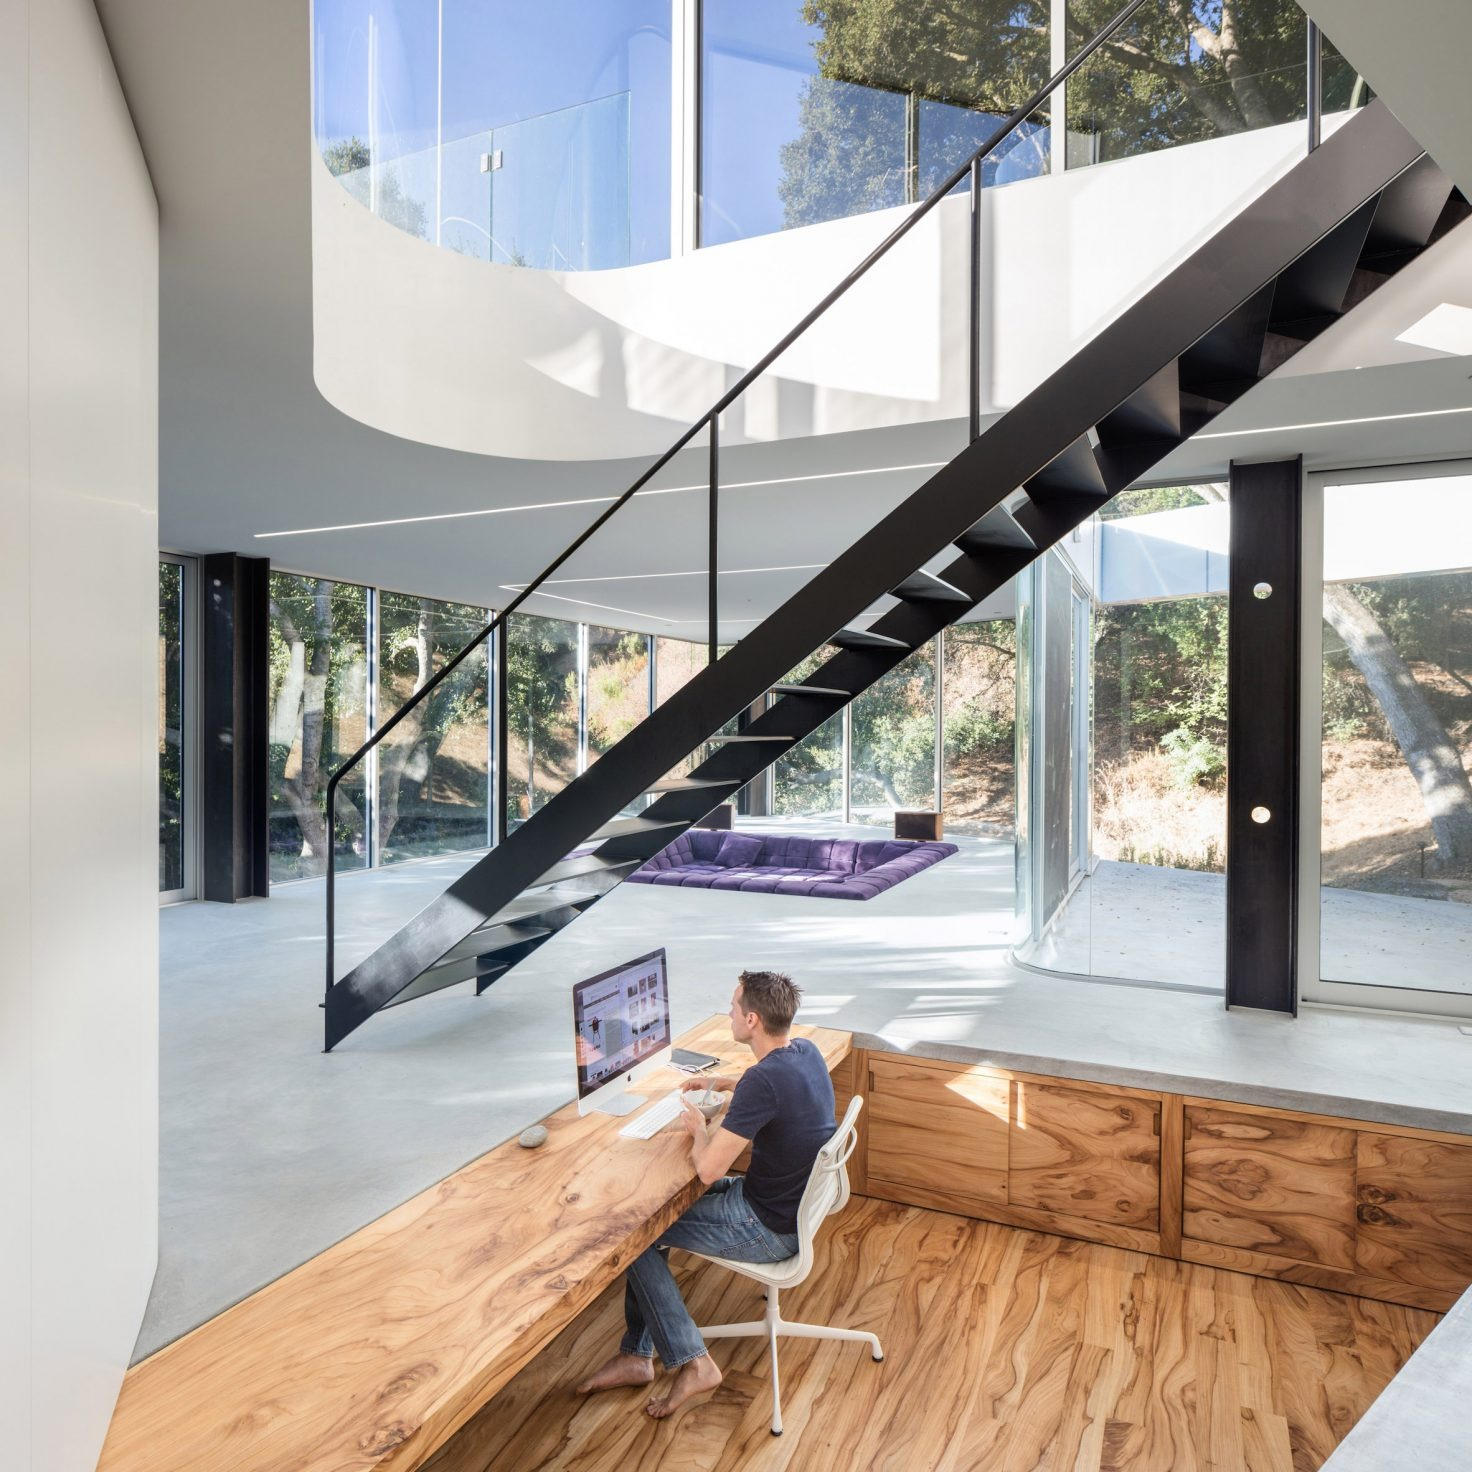 La casa de Pam y Paul en Silicon Valley (EEUU) / Craig Steely Architecture